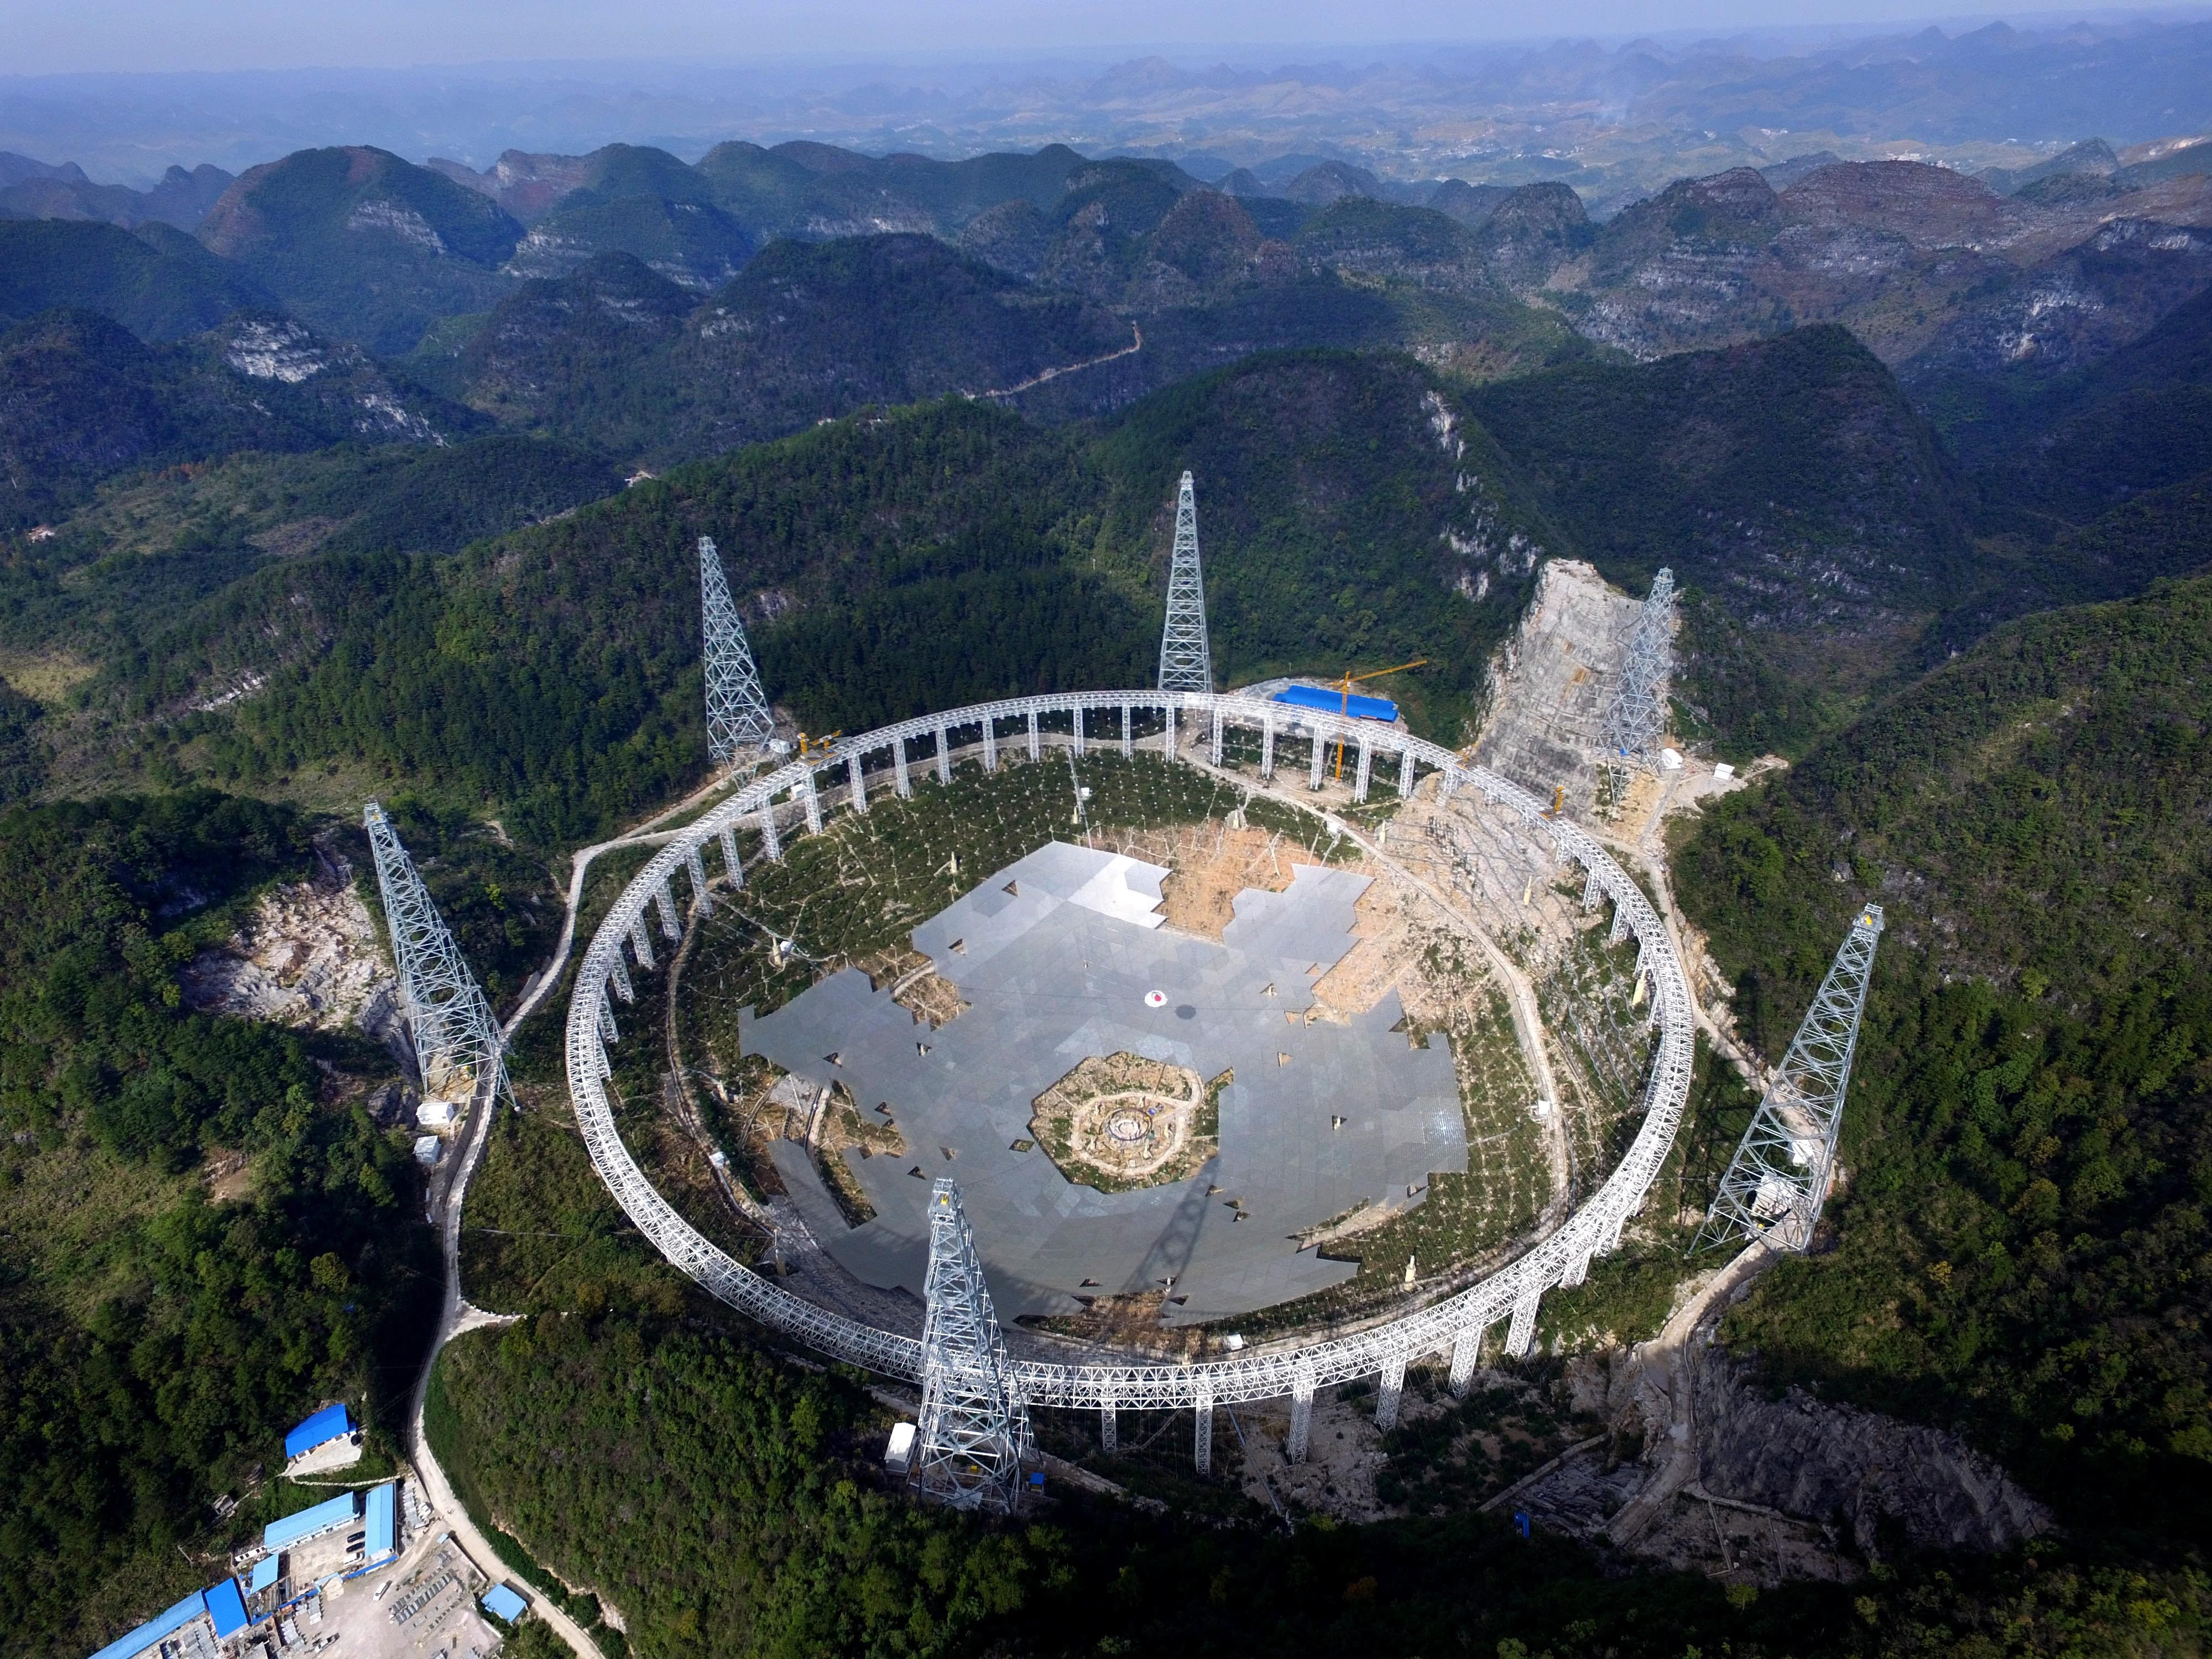 The Five-hundred-meter Aperture Spherical radio Telescope (FAST) under construction in southwest China's Guizhou province, on Nov. 26, 2015.